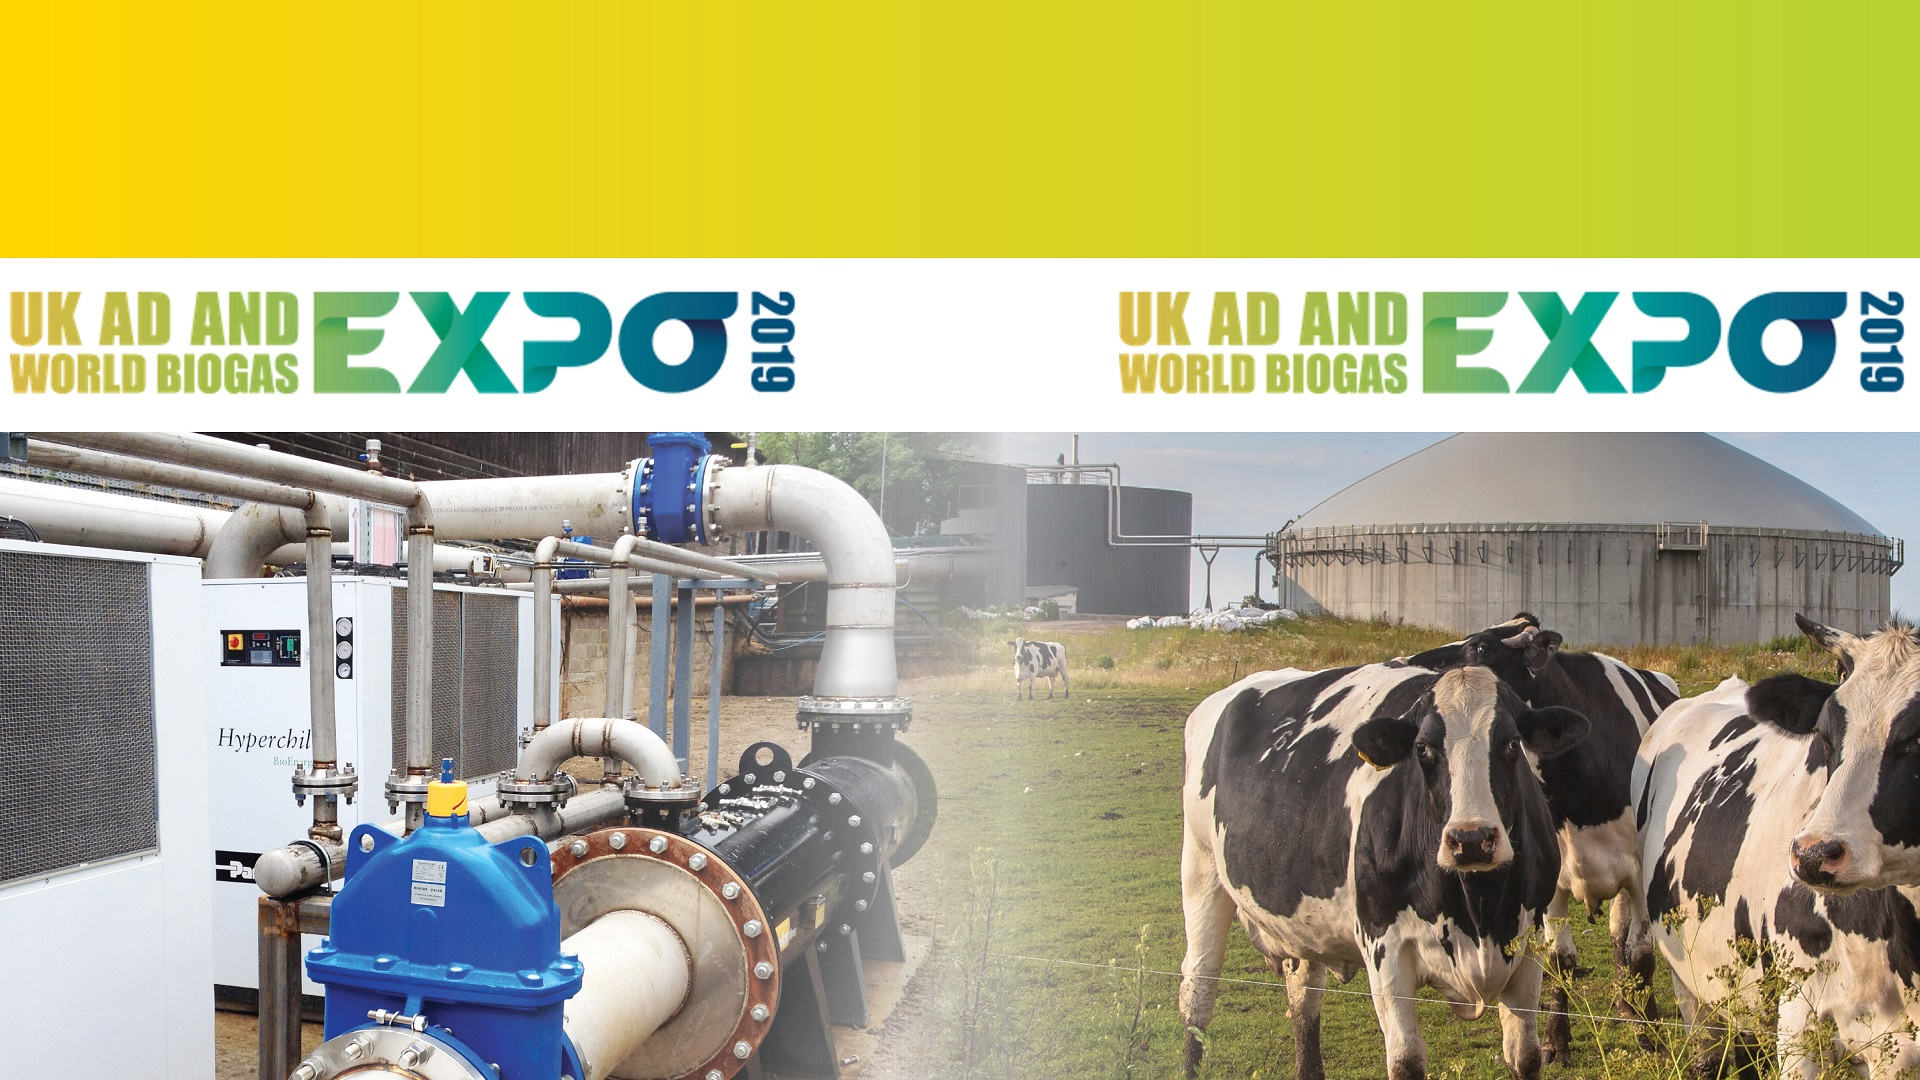 AD and Biogas AVK exhibiting